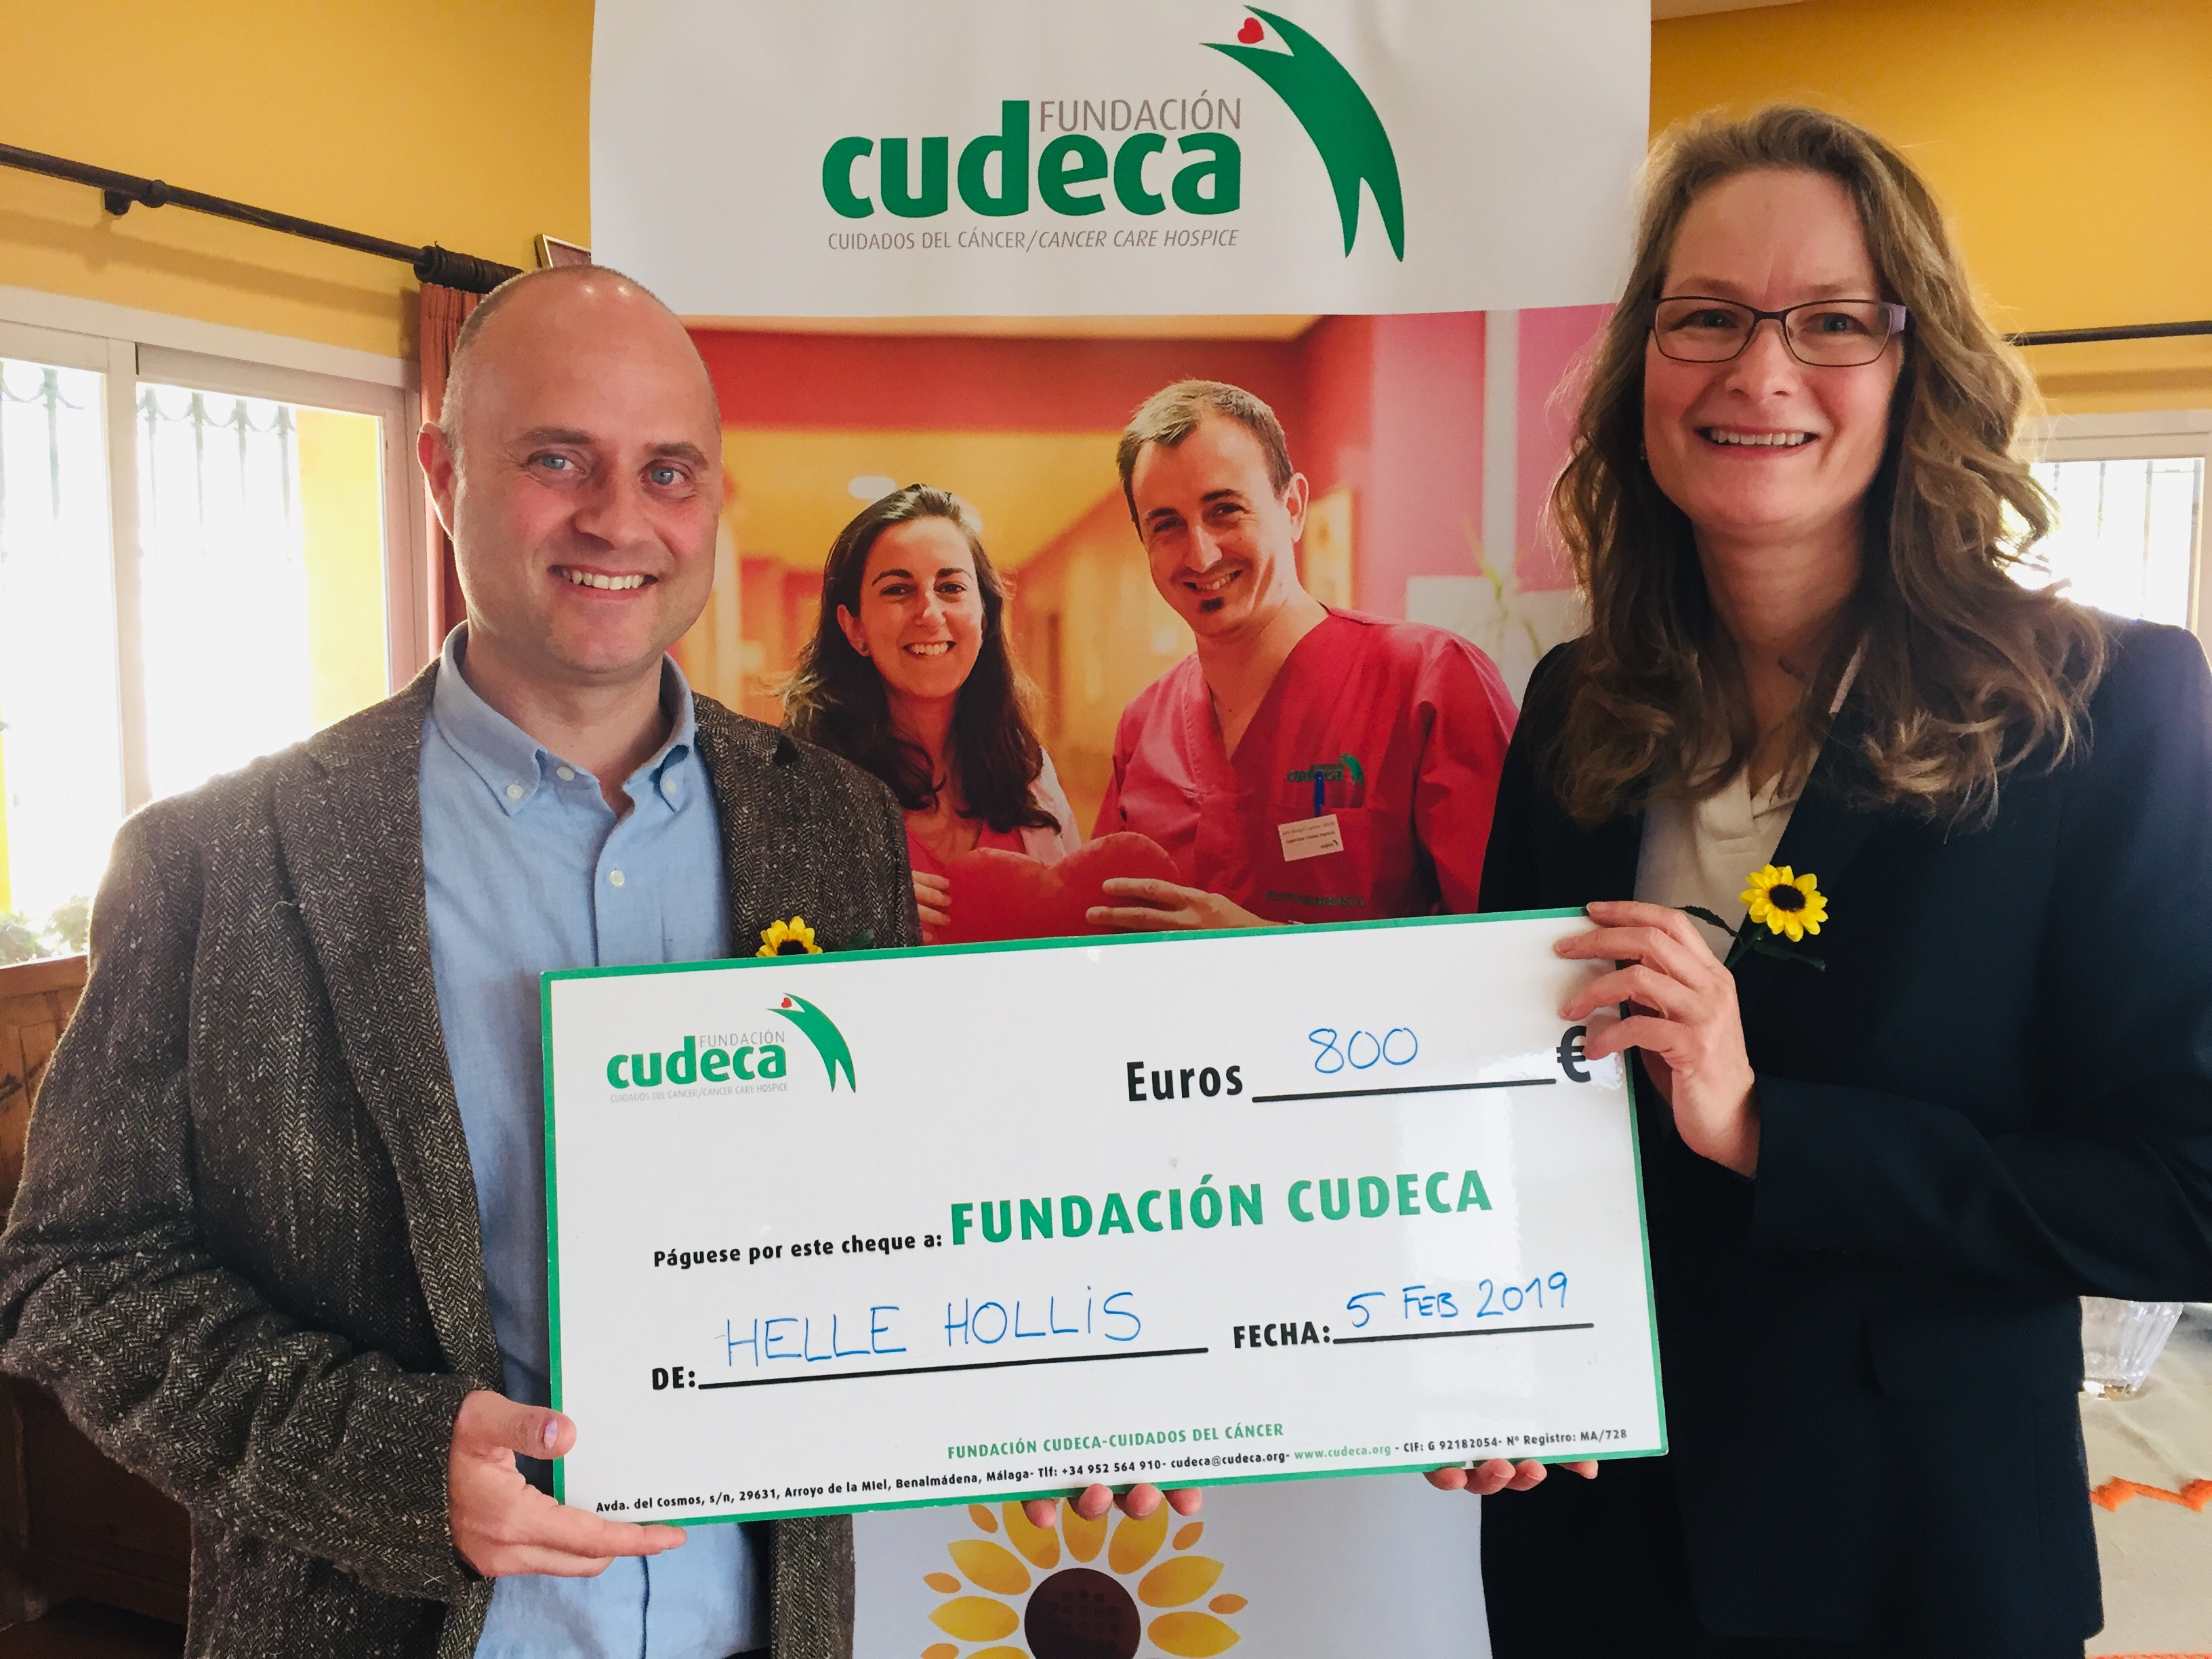 Helle Hollis presents cheque donation after 9 years helping CUDECA!